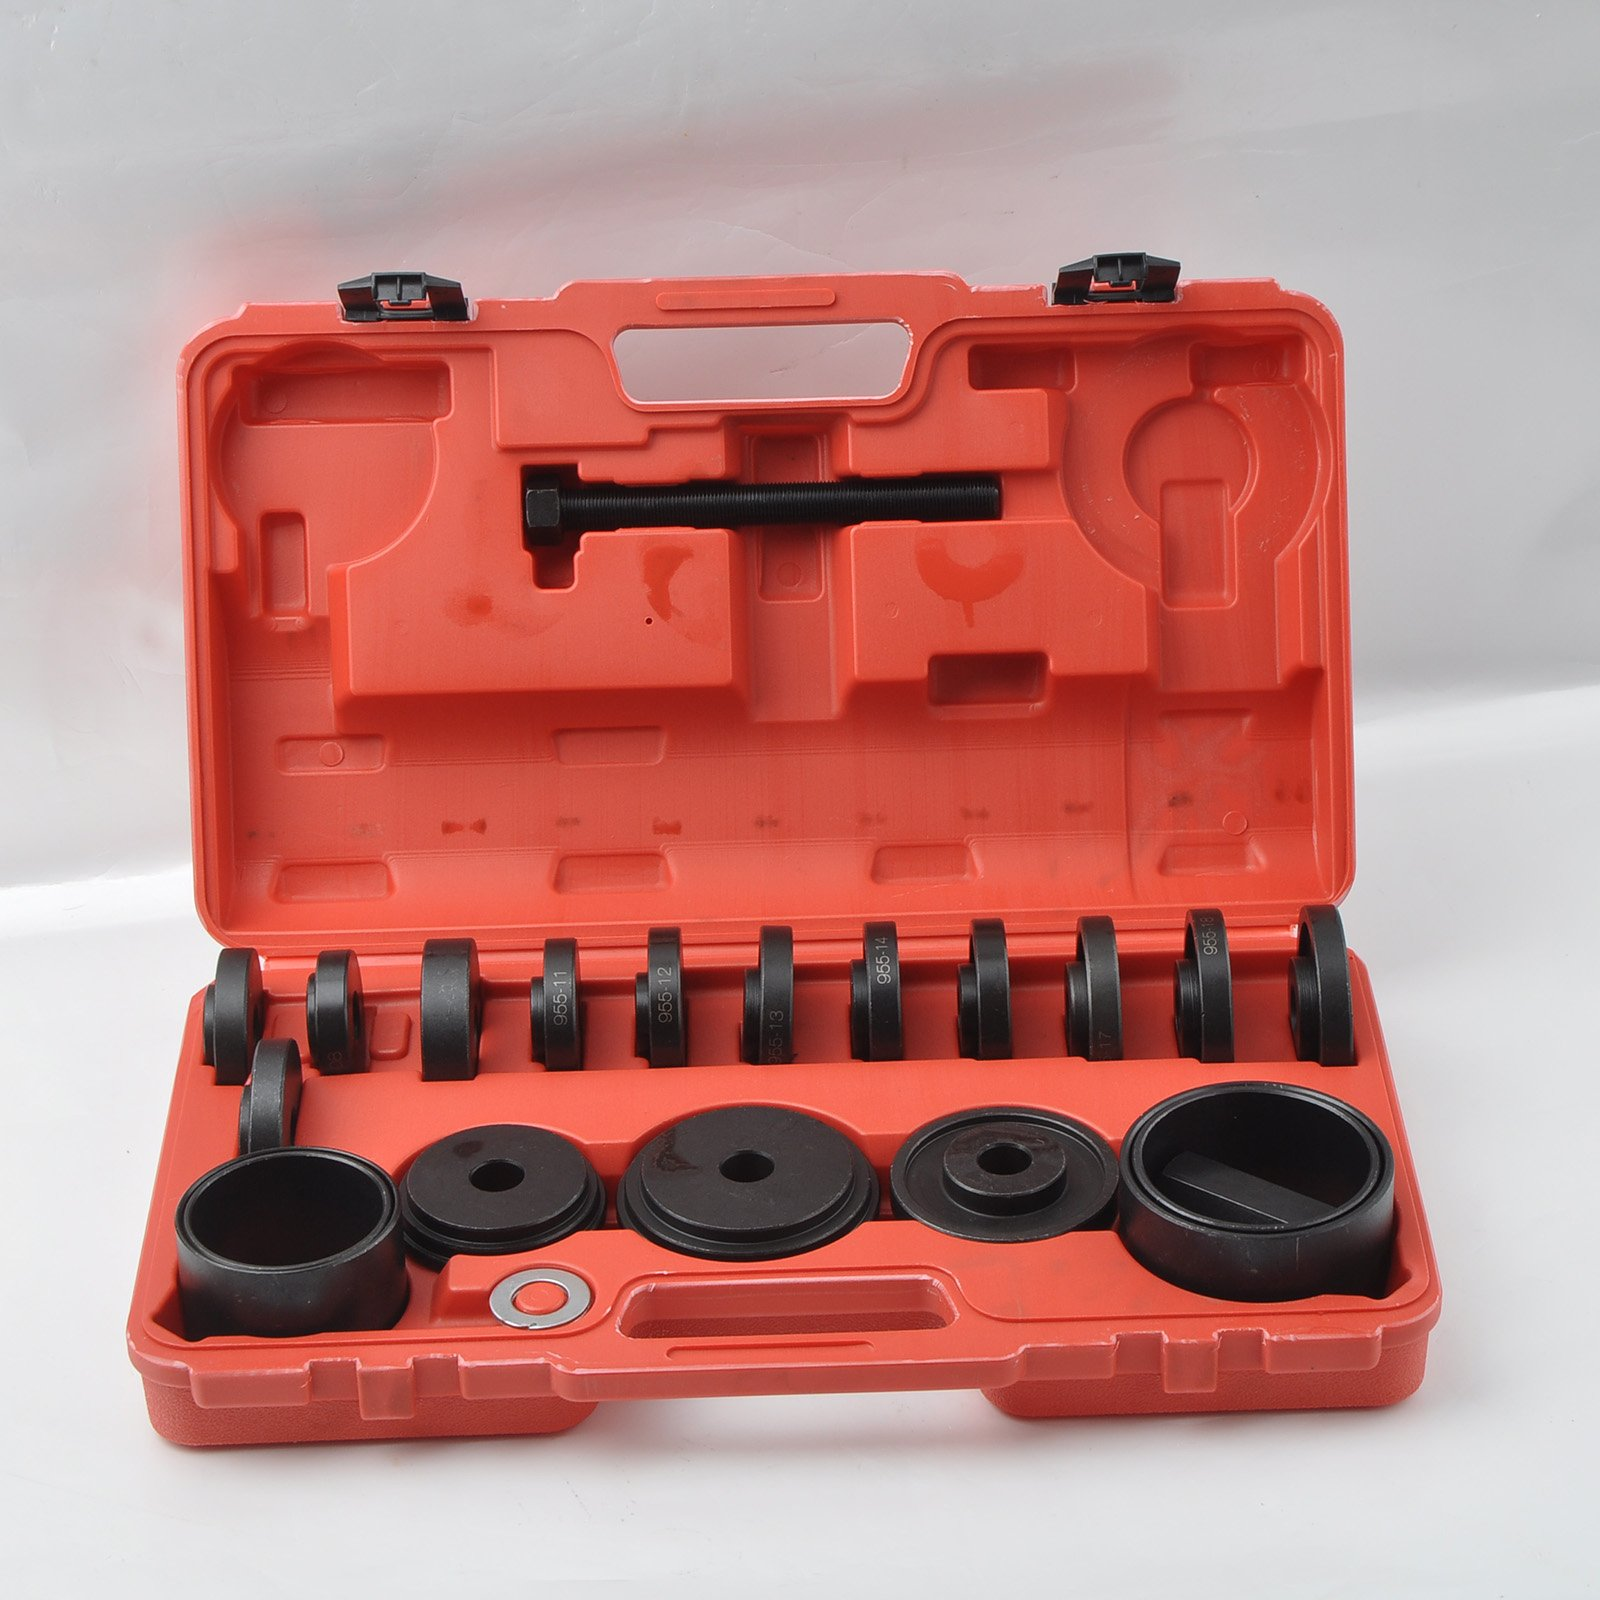 WIN.MAX 23 Pcs FWD Front Wheel Drive Bearing Adapters Puller Press Replacement Installer Removal Tool Kit by WIN.MAX (Image #3)